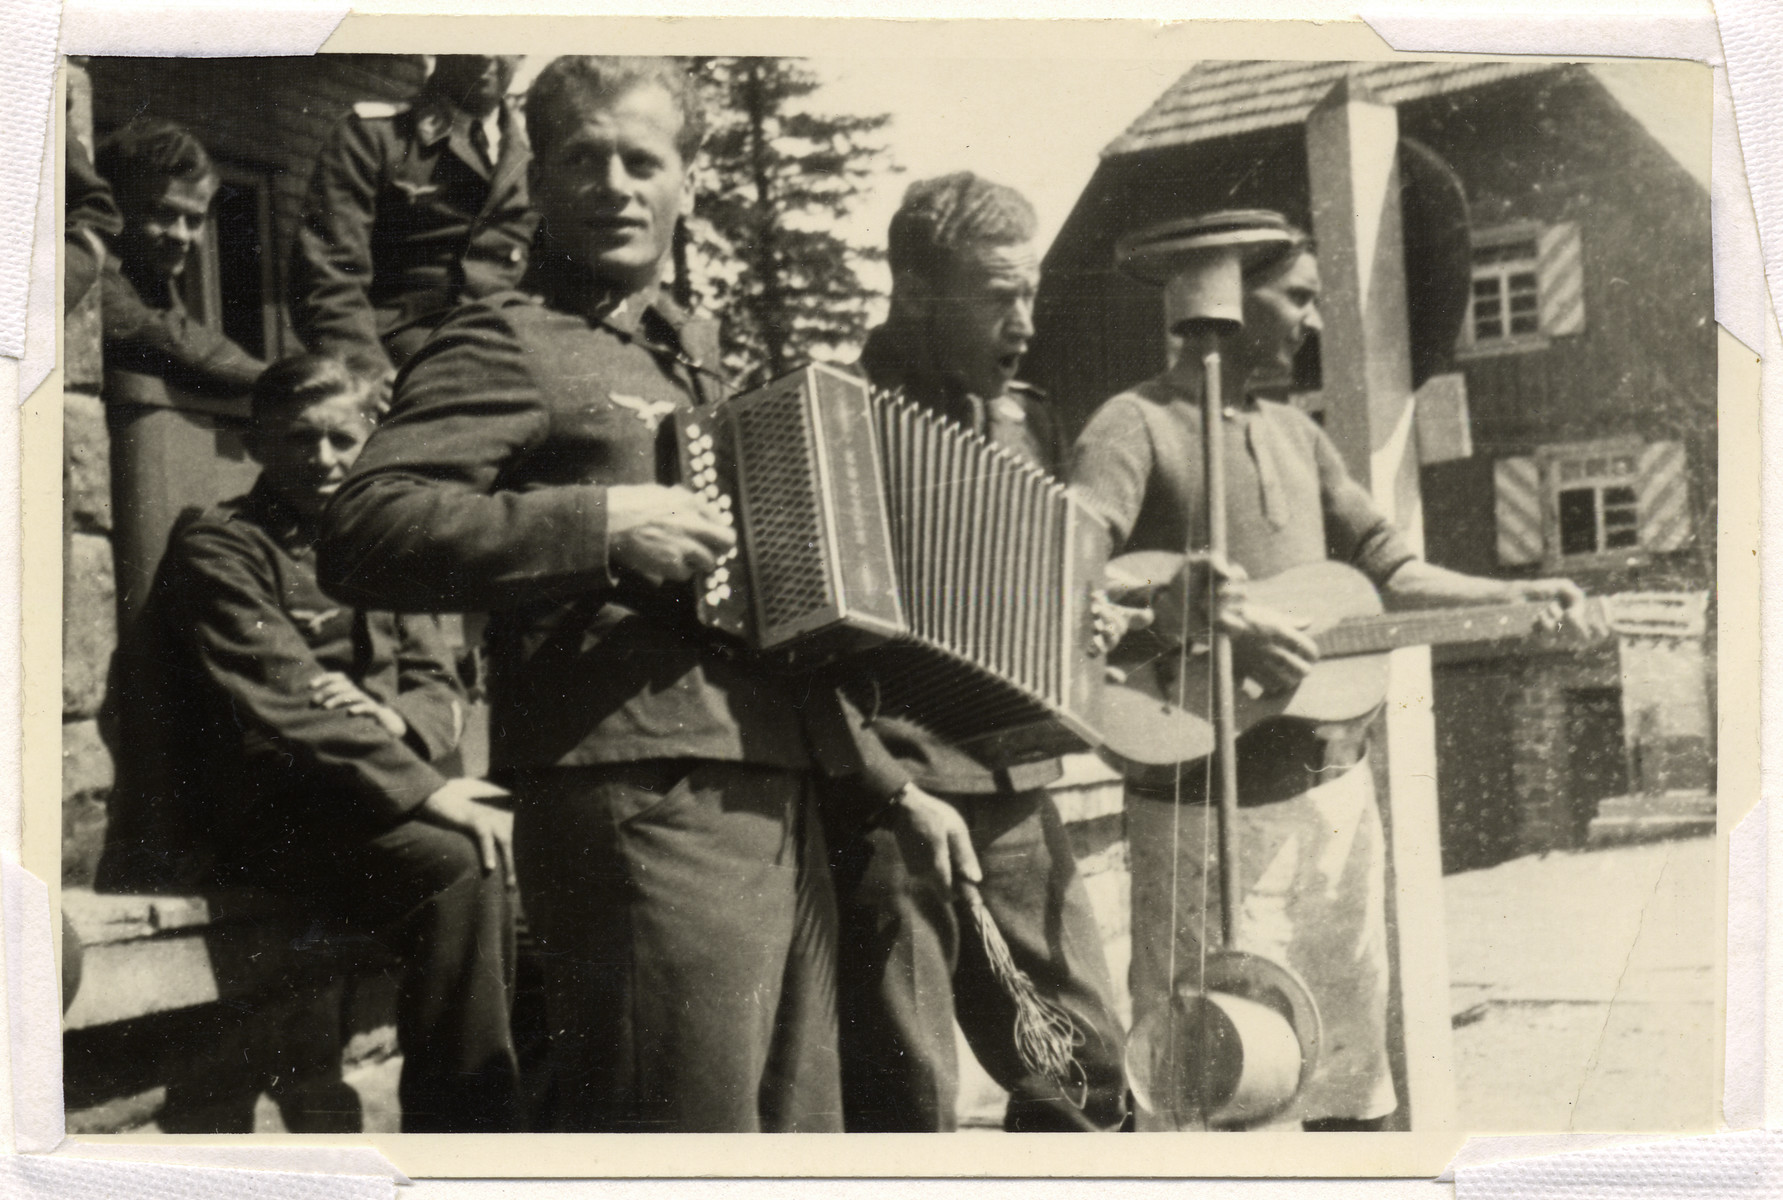 A German soldier with an accordian performs together with a guitarist who is not in uniform.